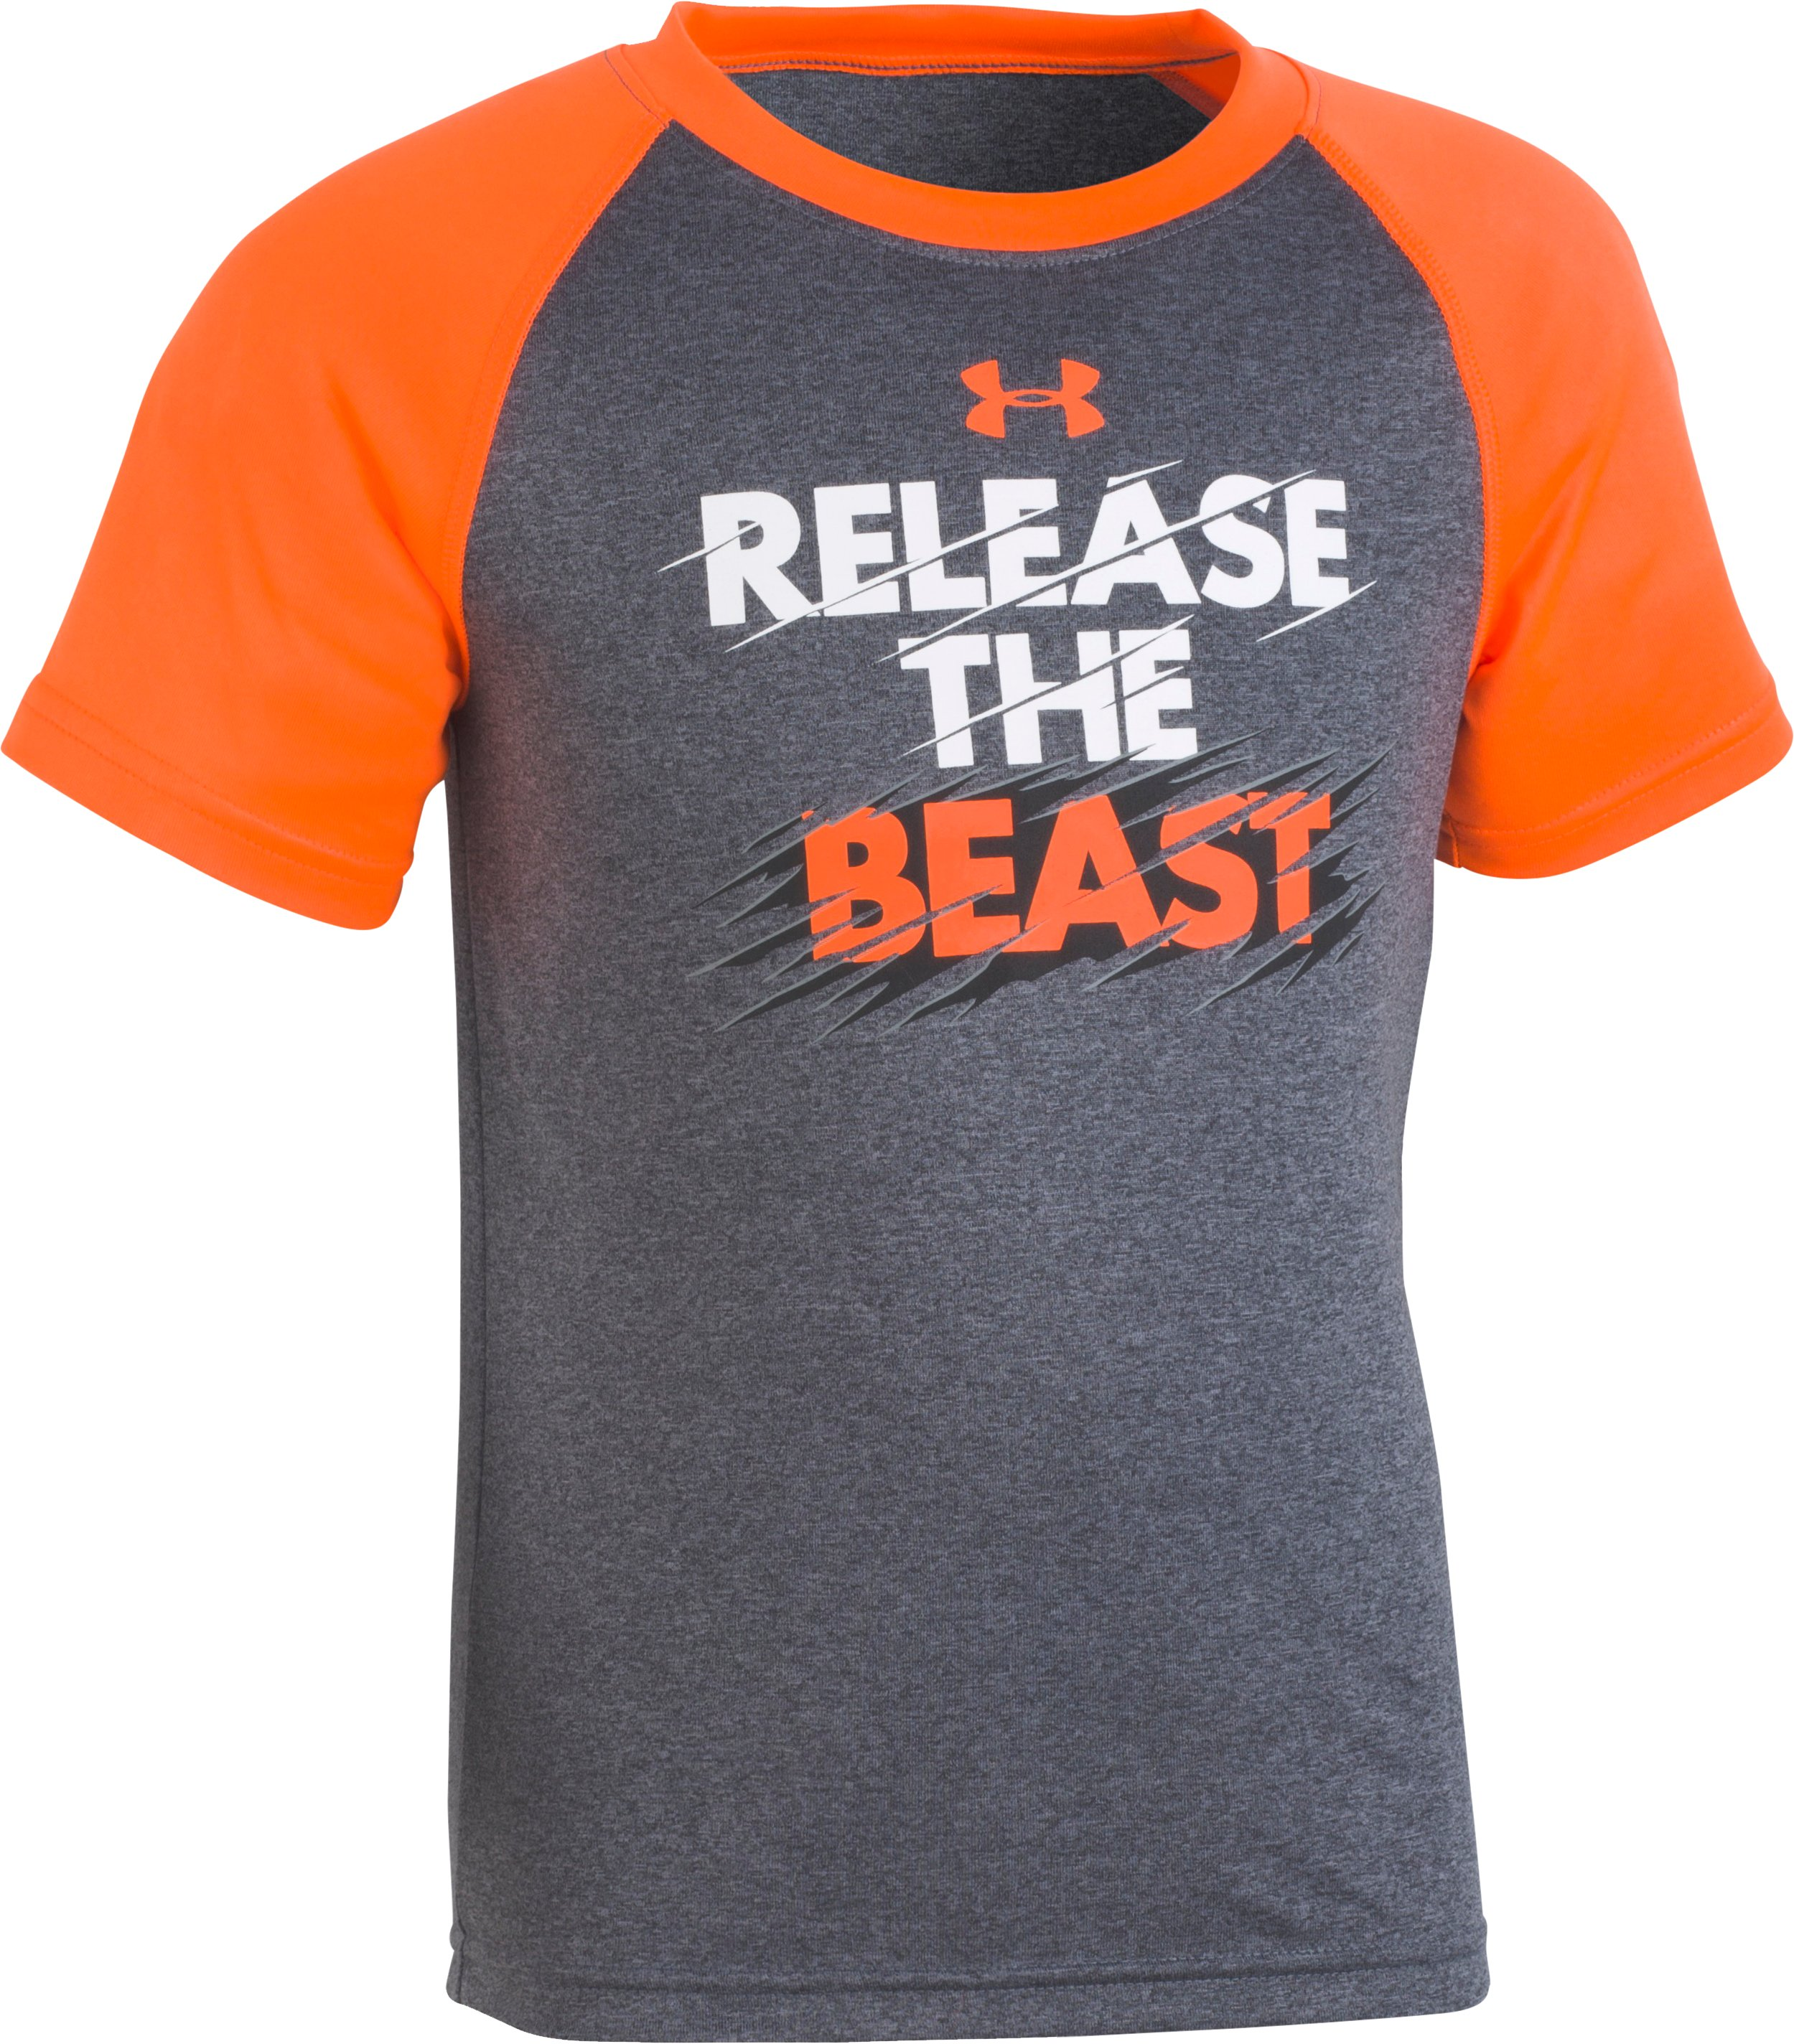 beast tshirts Boys' Toddler UA Release The Beast T-Shirt  nice to see a company have quality clothing for toddlers....I loved this shirt for my toddler....good fit for a toddler